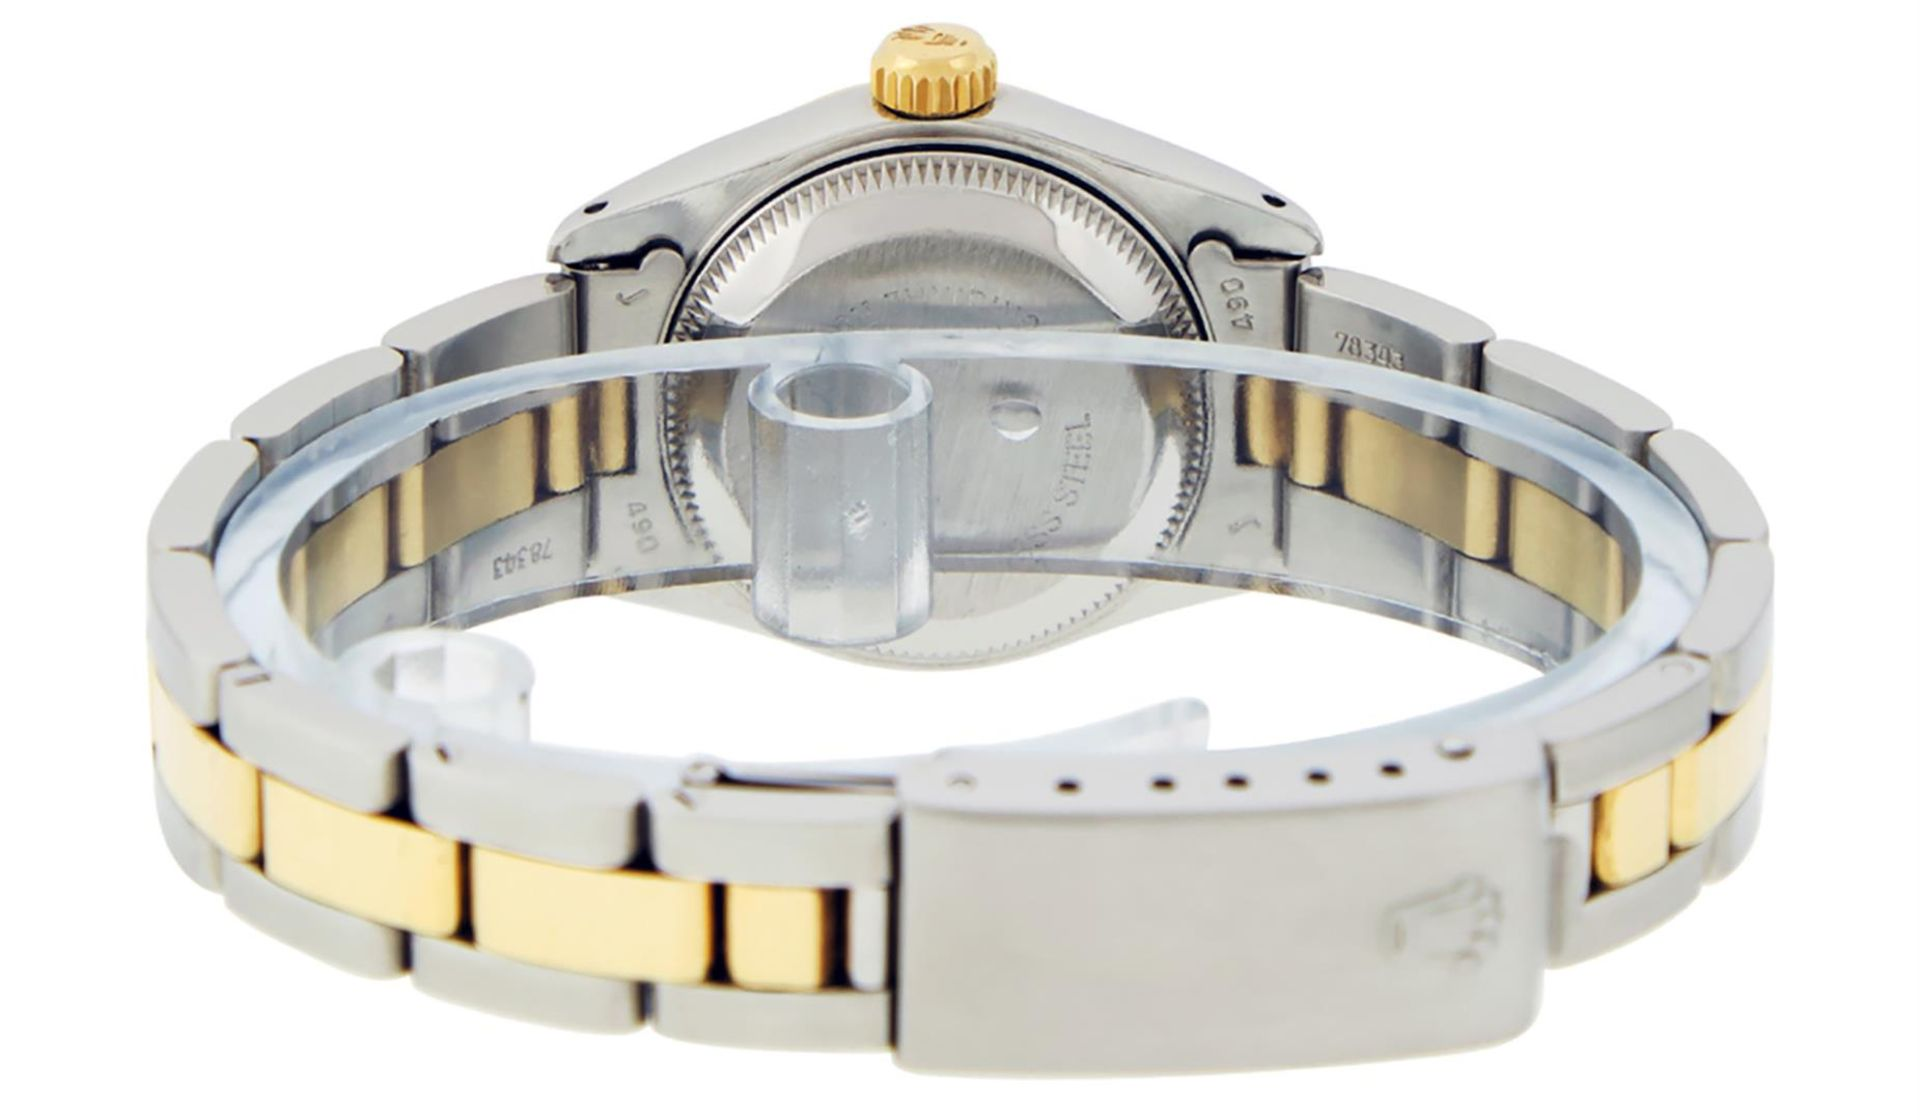 Rolex Ladies 26 Black Diamond Oyster Perpetual Datejust Polished Serviced - Image 6 of 9